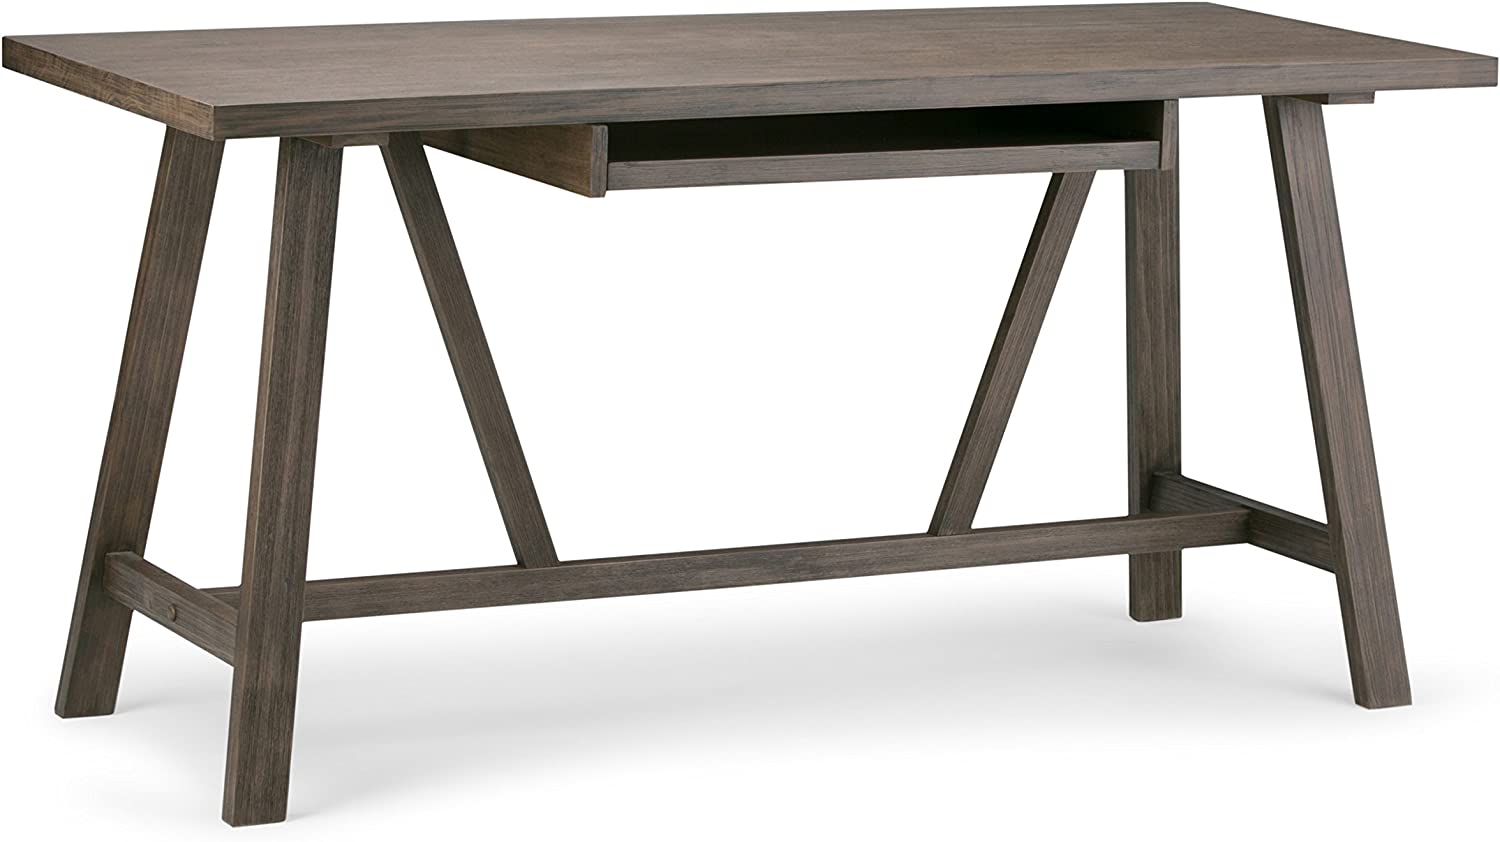 SIMPLIHOME Dylan SOLID WOOD Modern Industrial 60 inch Wide Home Office Desk, Writing Table, Workstation, Study Table Furniture in Driftwood